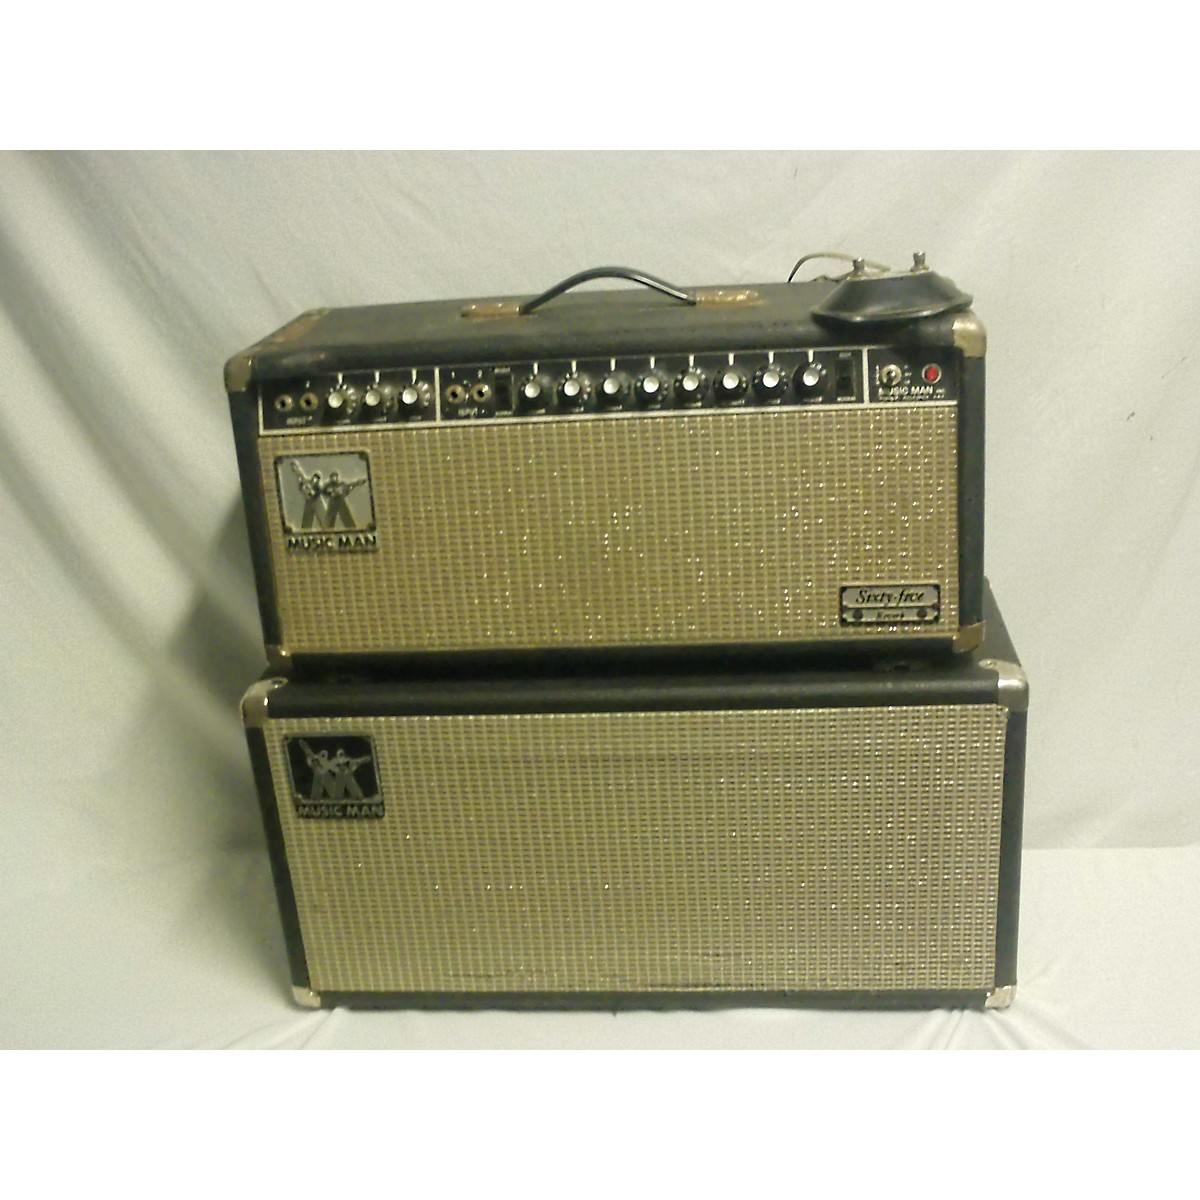 Ernie Ball Music Man 1970s 1970's Musicman Sixty-five Reverb Head And 2x10 Cab. Tube Guitar Combo Amp